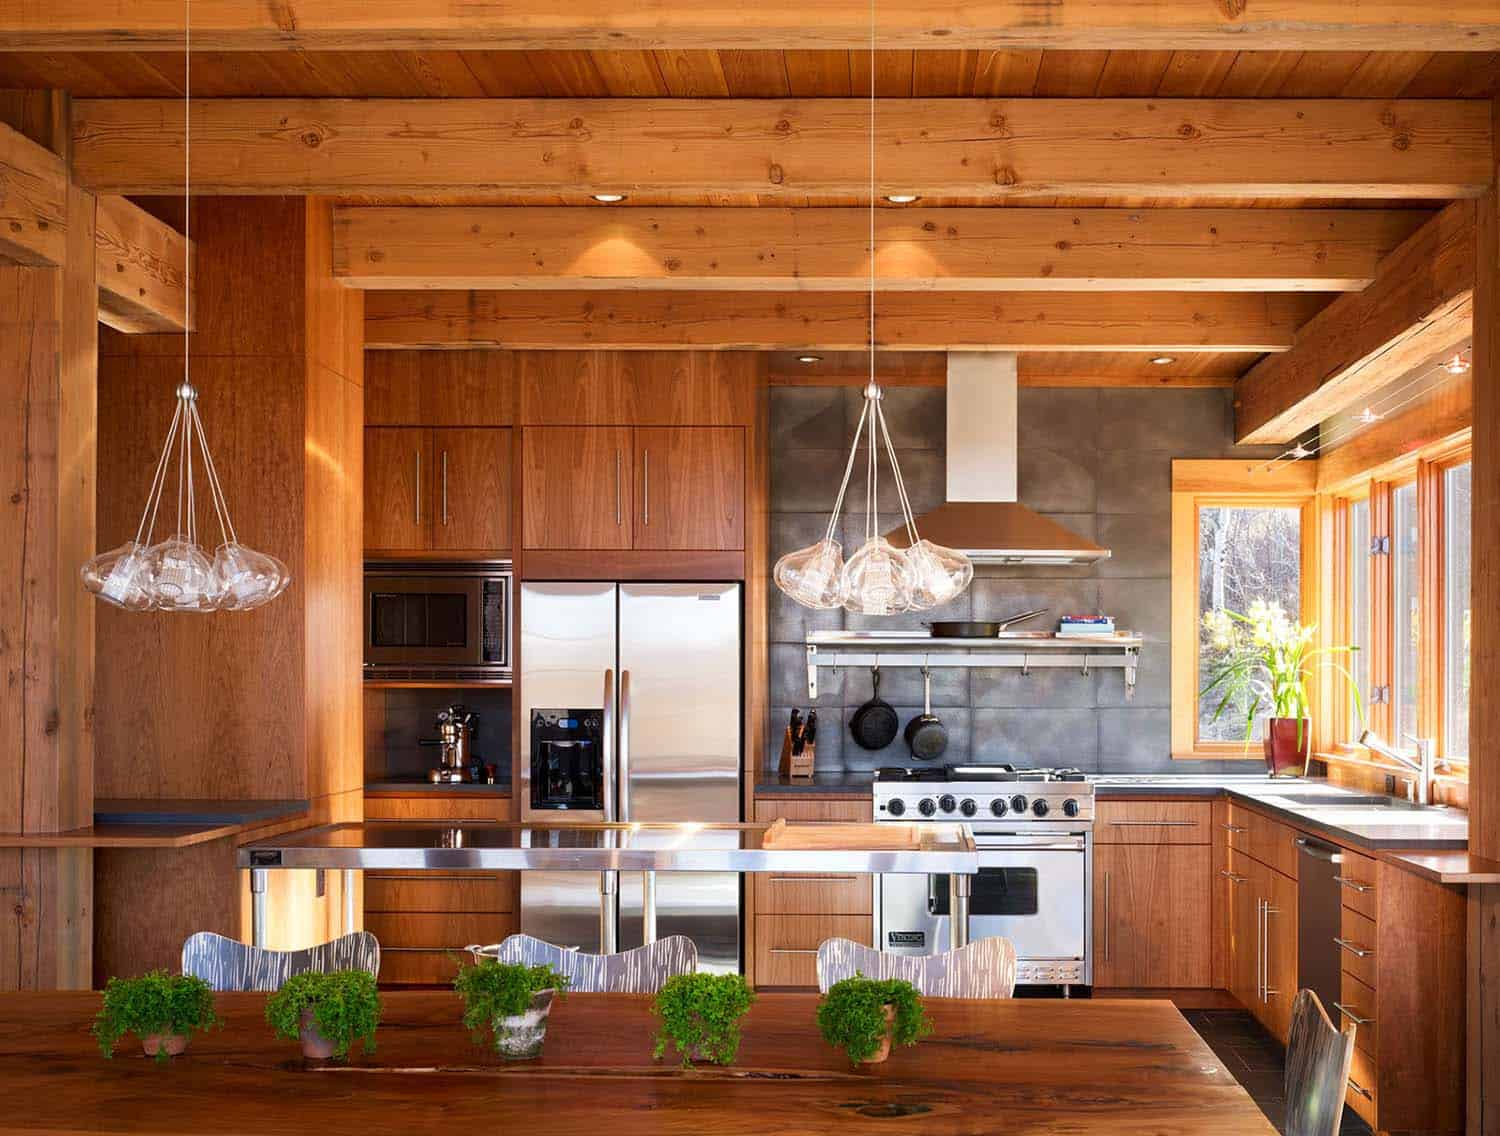 Contemporary Eco-Friendly Home-Robert Hawkins Architects-08-1 Kindesign